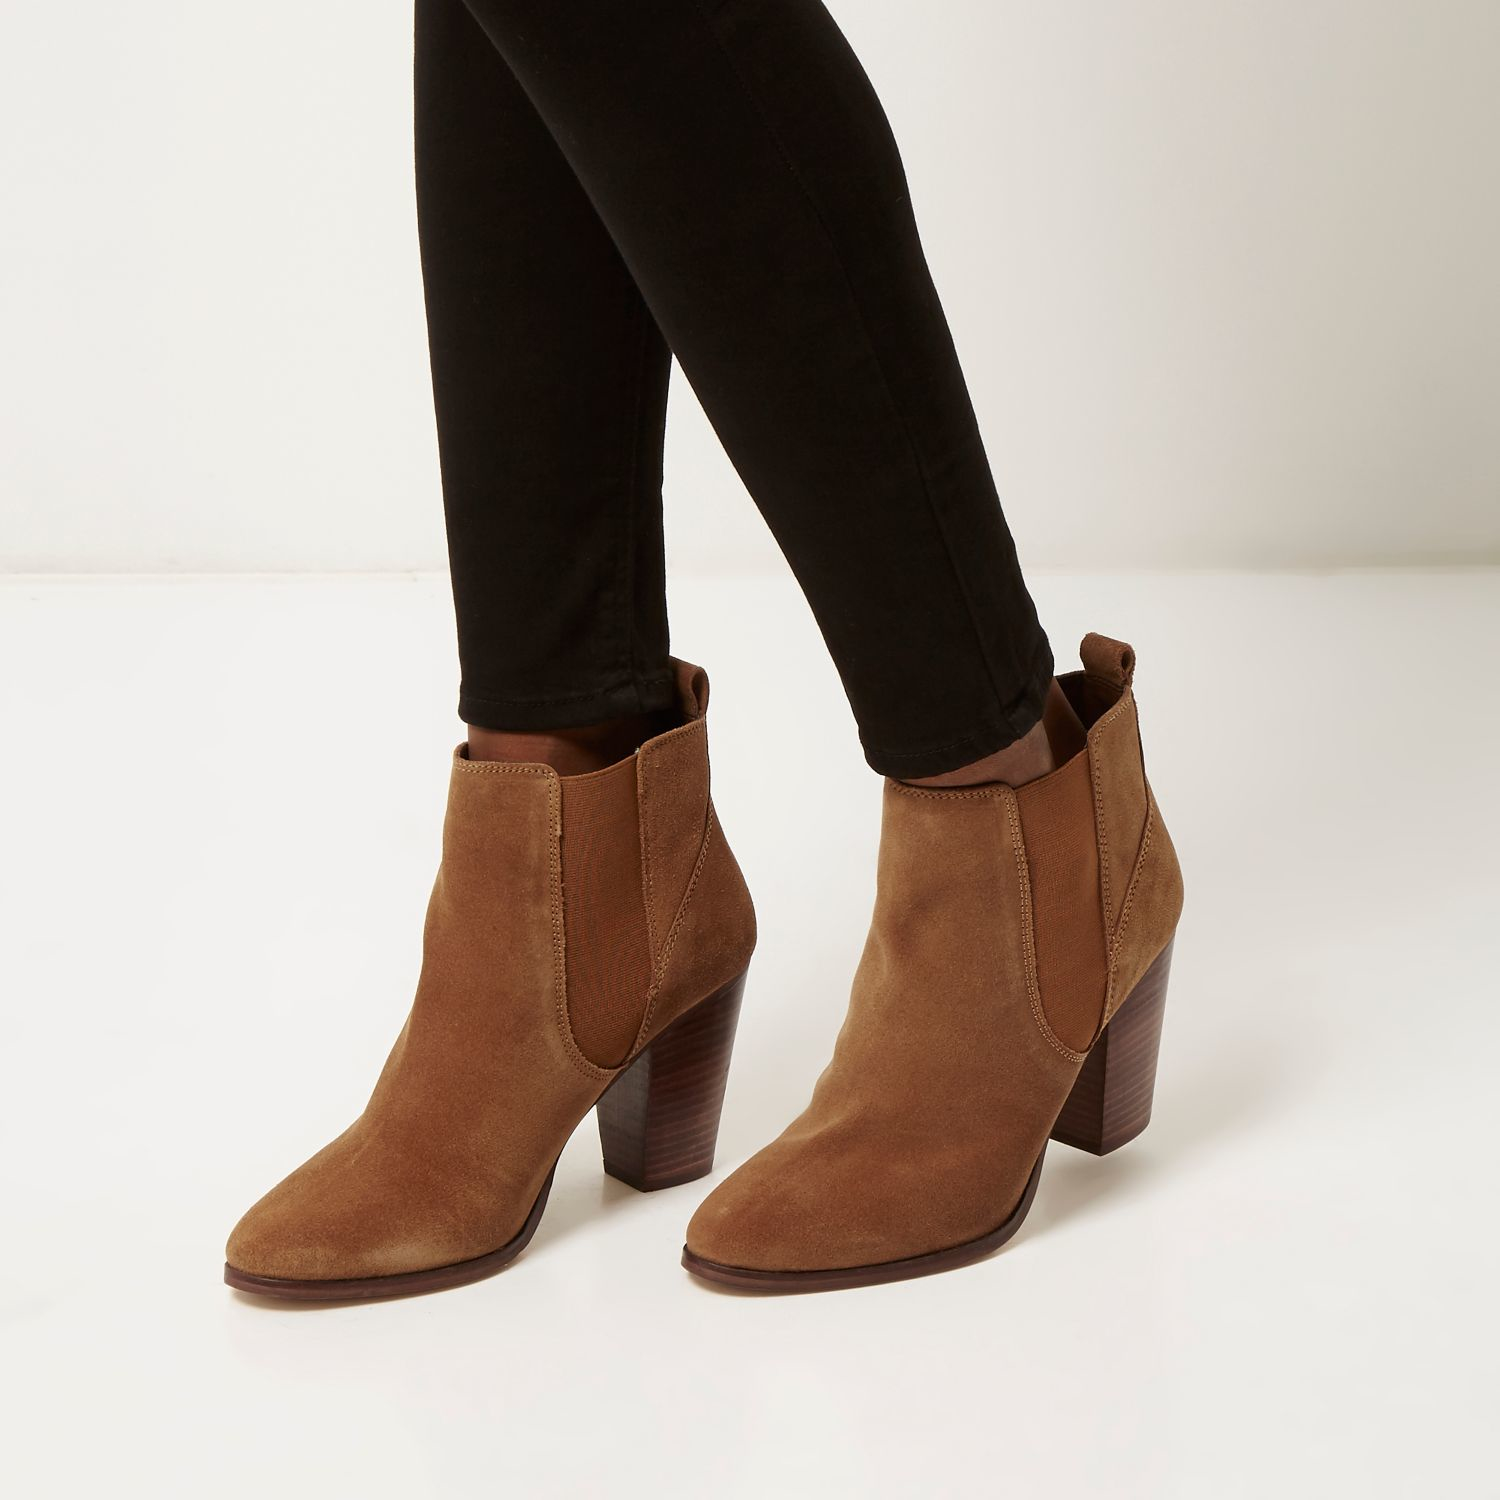 9d797d4125a6 River Island Brown Suede Heeled Ankle Boots in Brown - Lyst